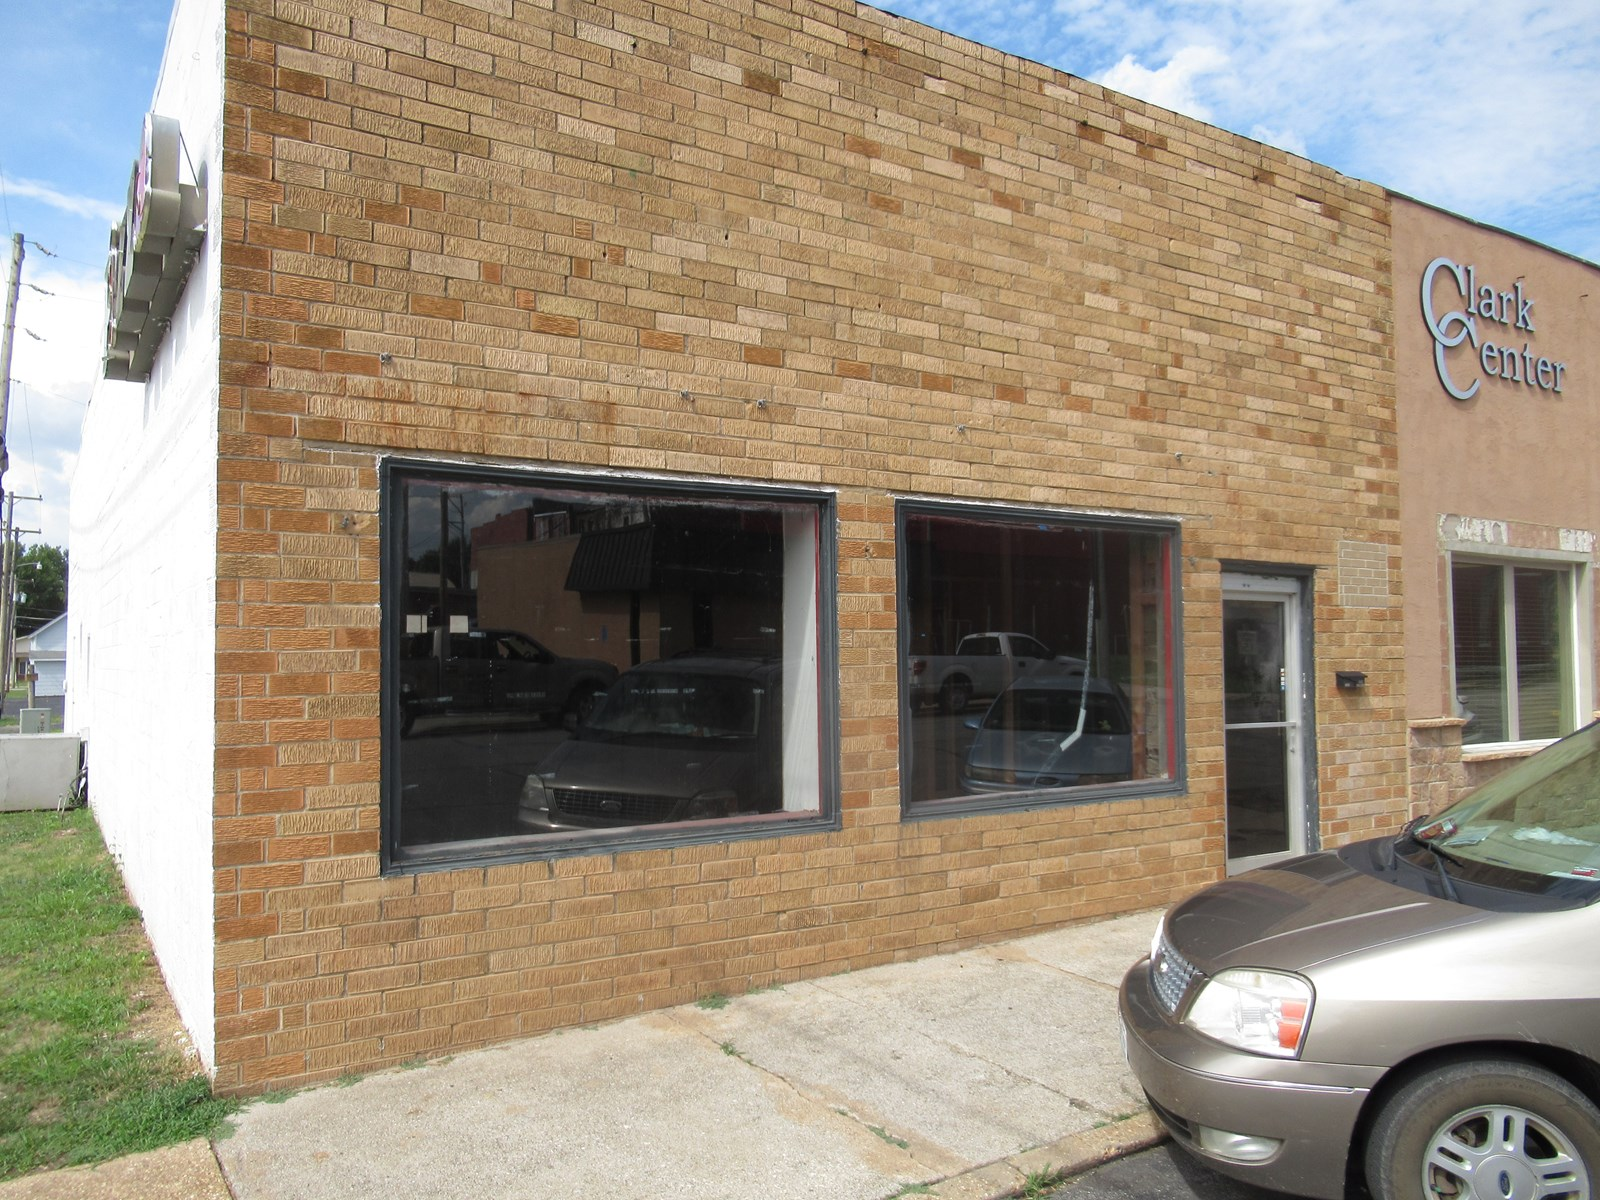 For Sale Commercial Building in Greenfield, Mo.